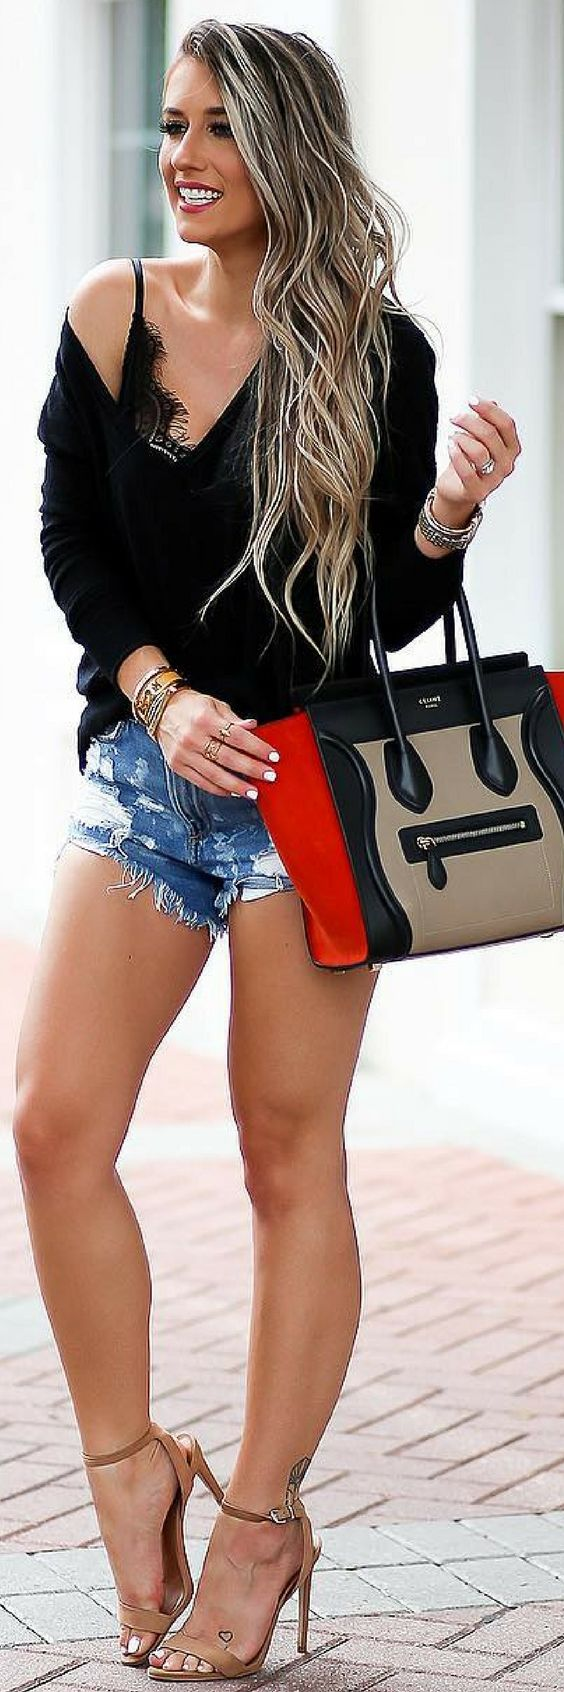 1 Effortless Way On How To Style Beautiful Fall Shorts http://ecstasymodels.blog/2017/10/30/1-effortless-way-style-fall-shorts/